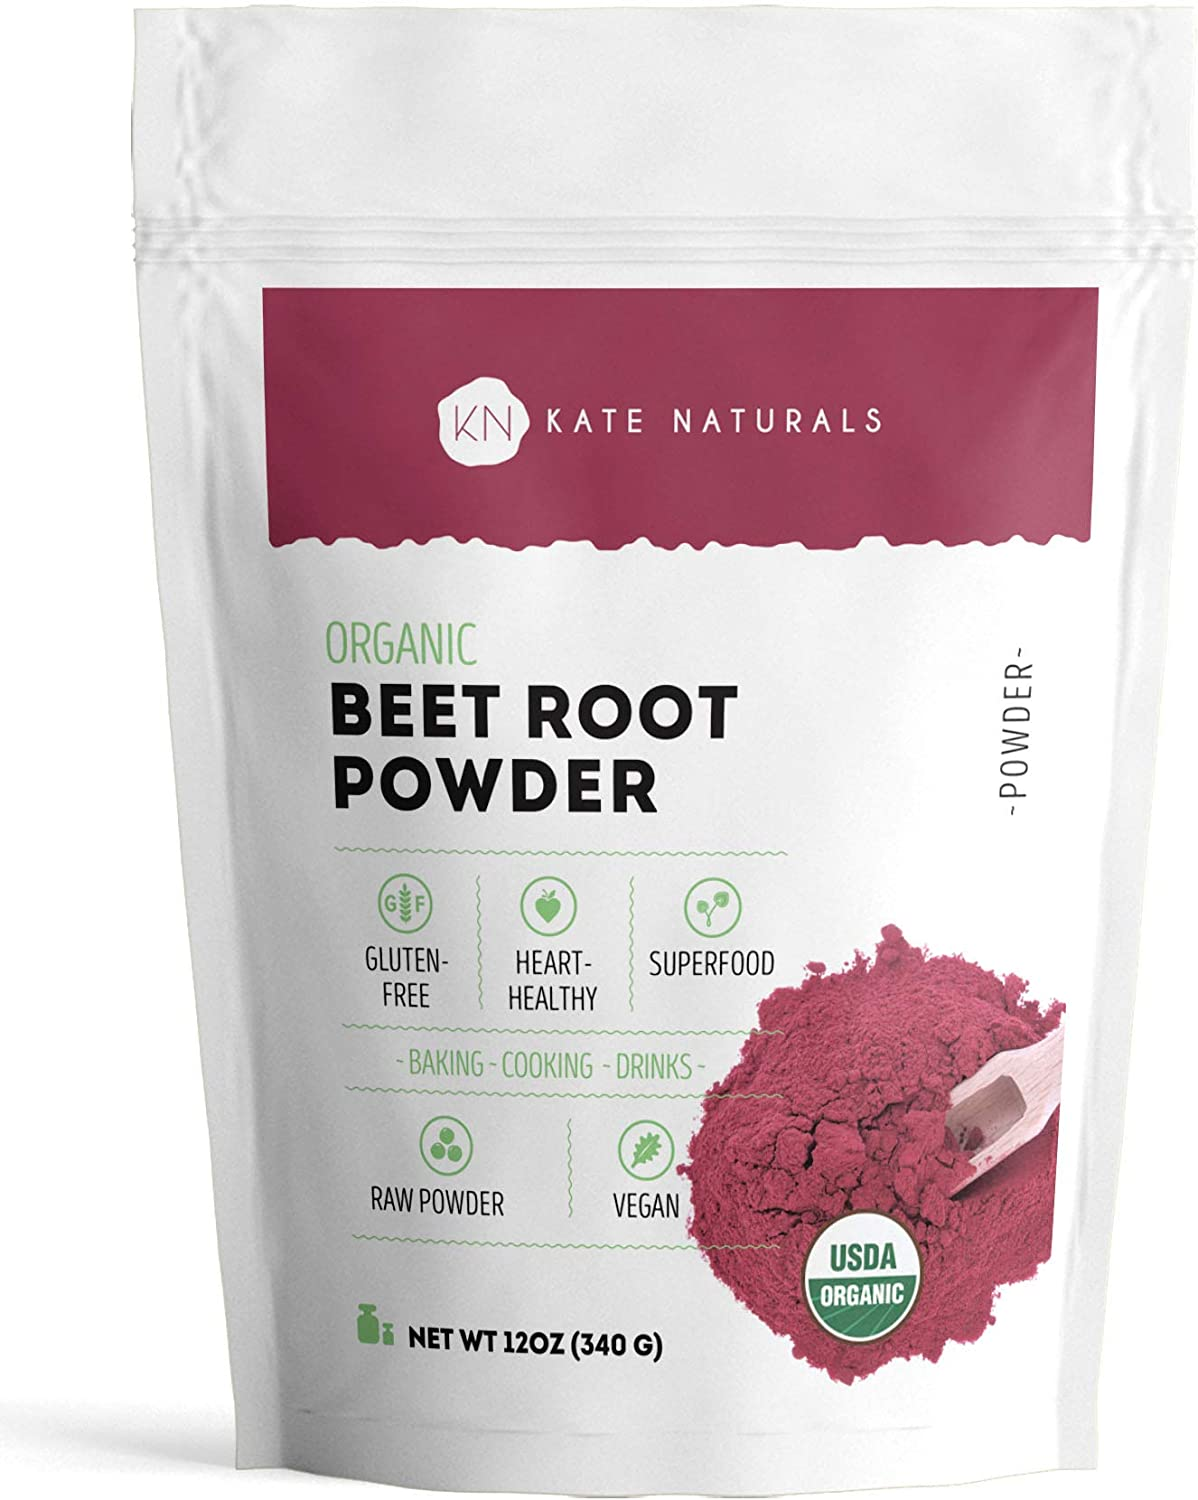 Organic Beet Root Powder Sale Portland Mall 12oz Smoothies and Baking for Cooki